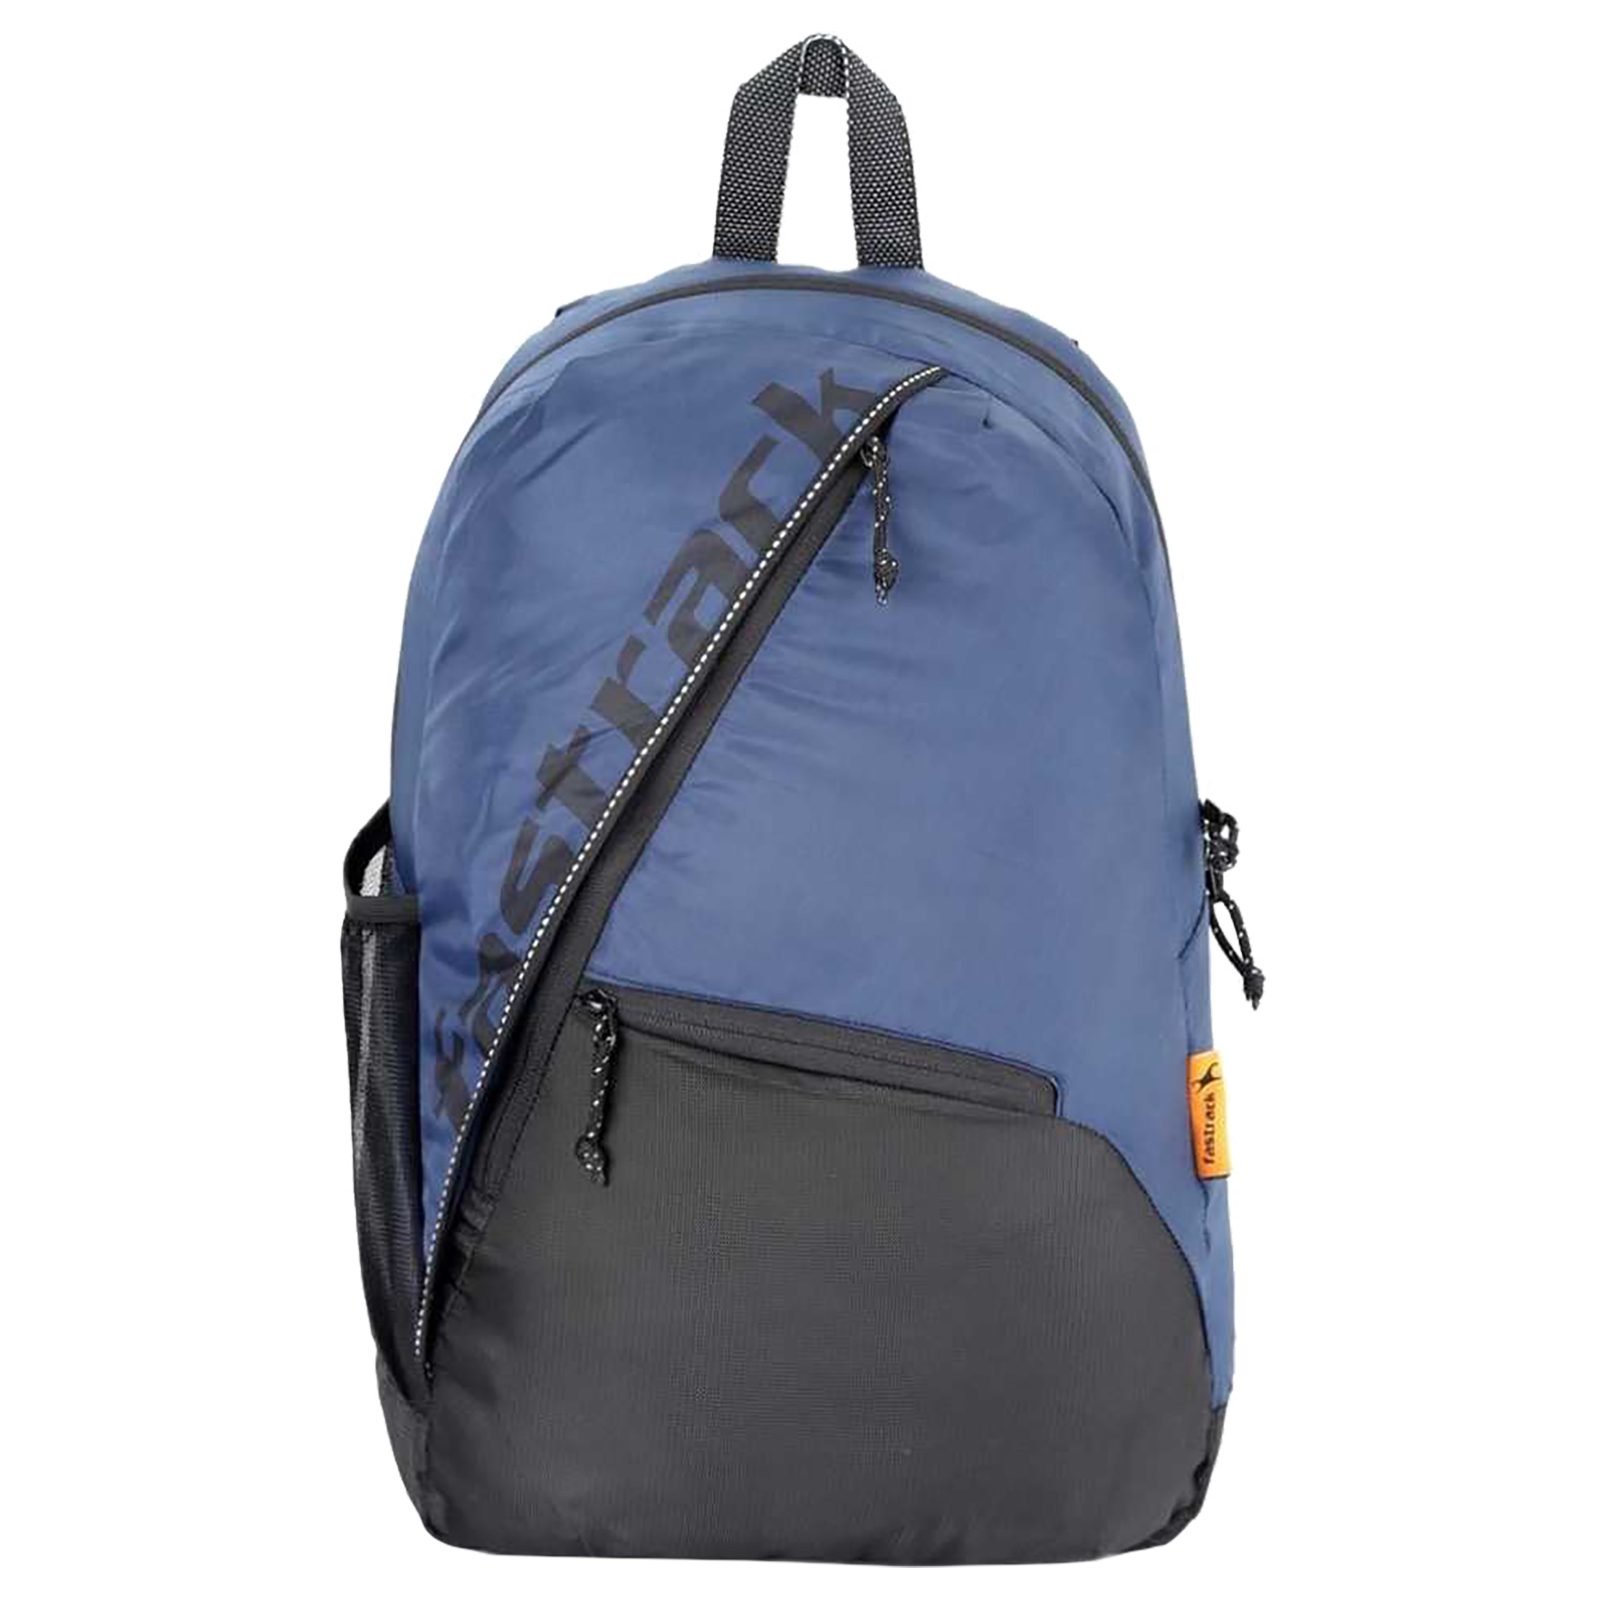 Fastrack 22 Litres Polyester Backpack (Haul Loop, AC034NBL02, Blue)_1